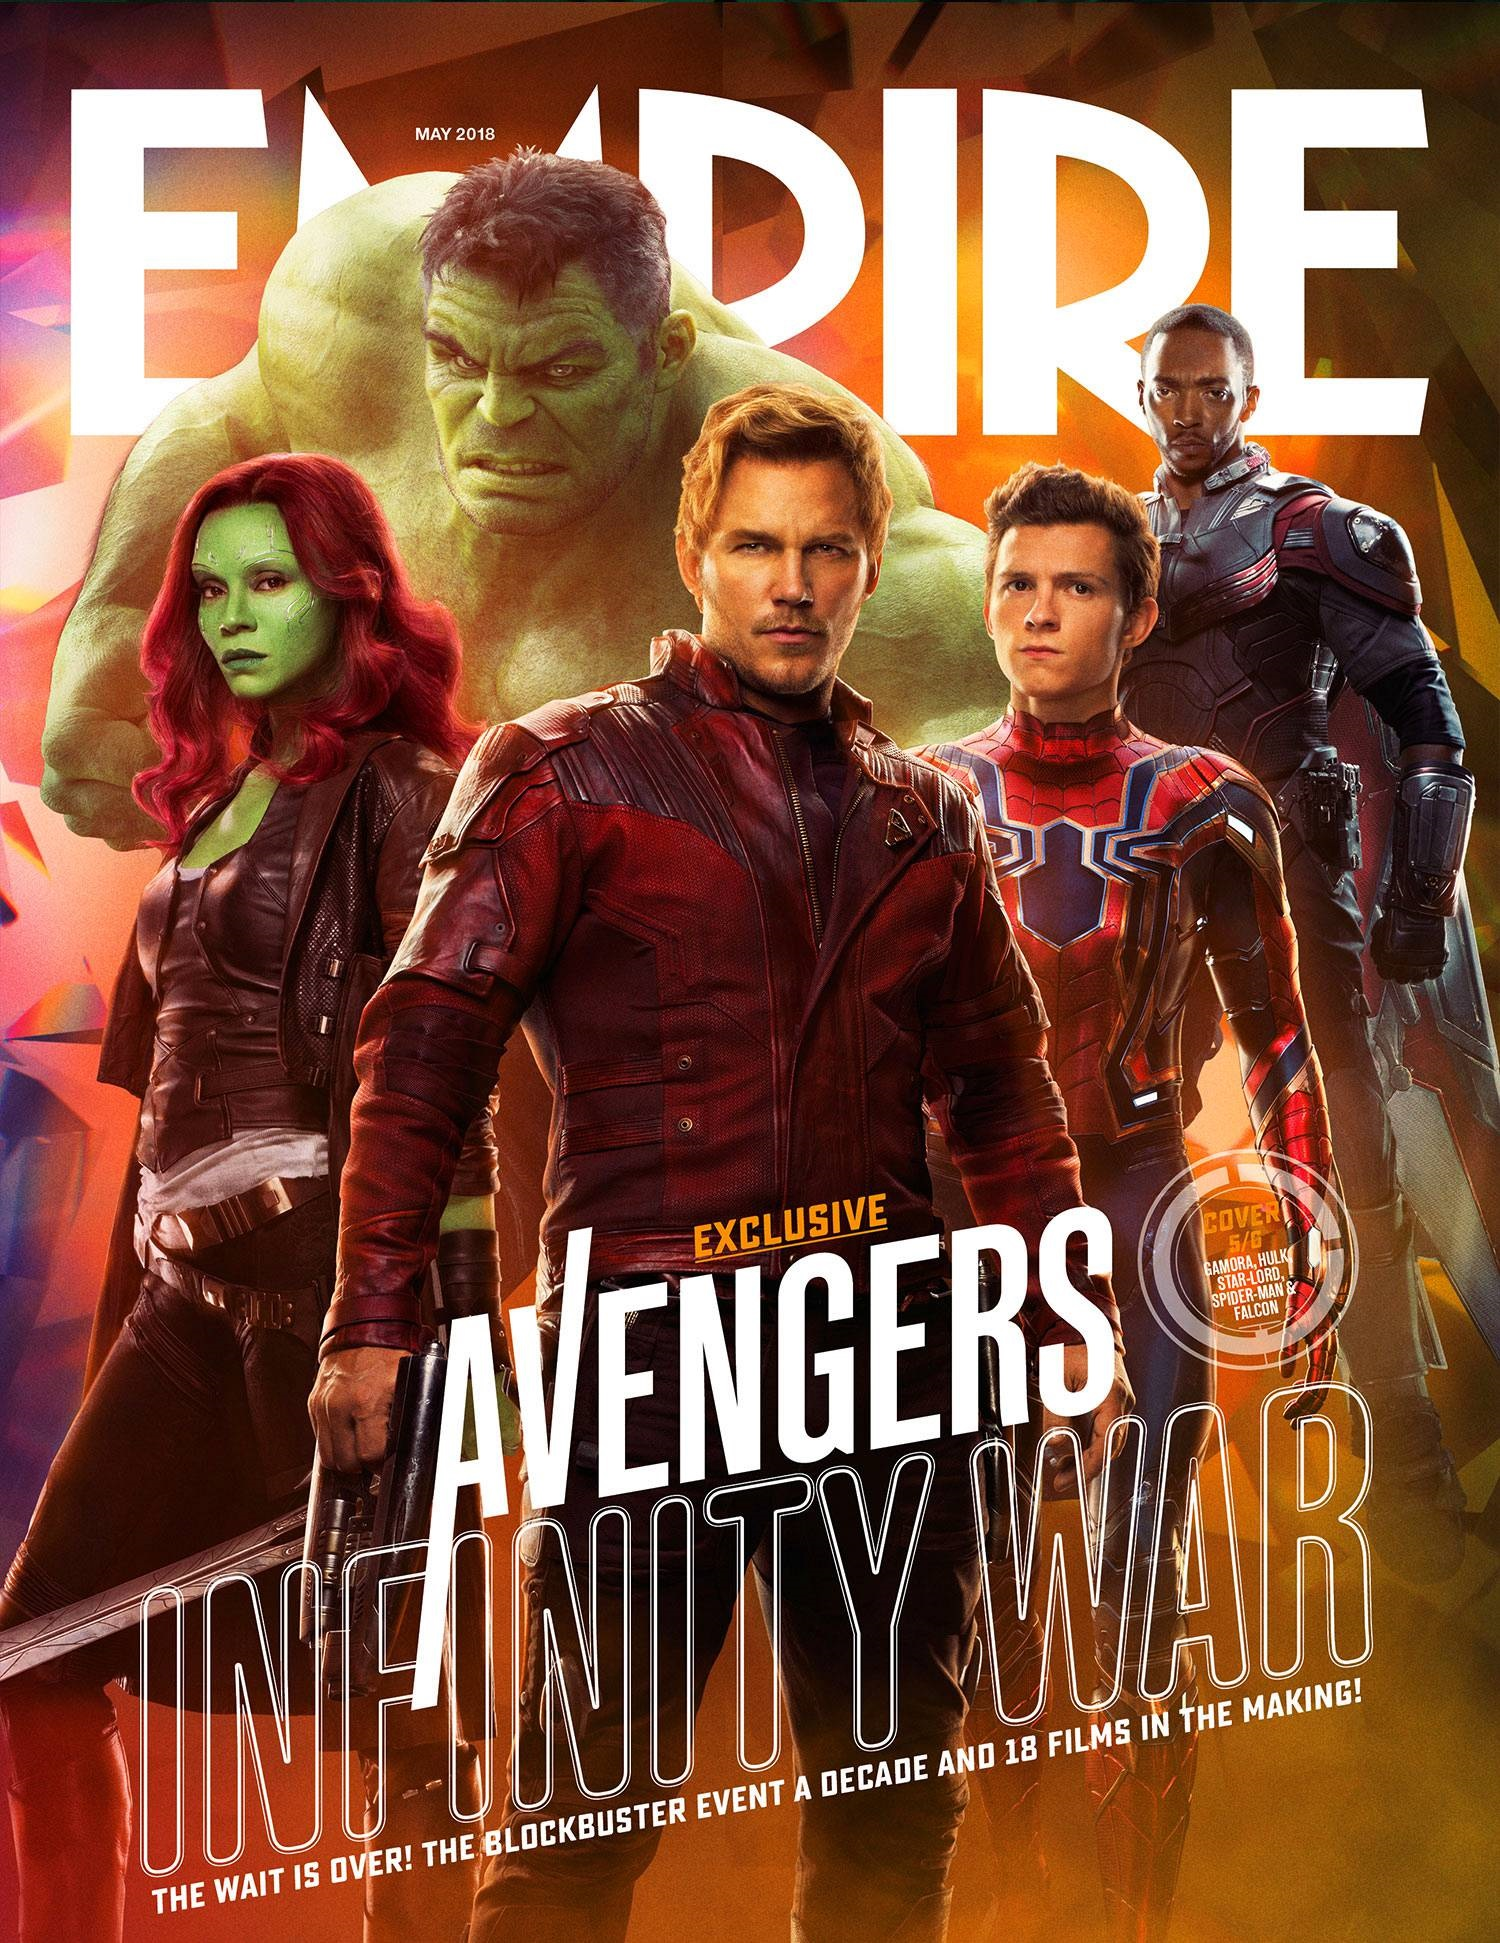 Cover featuring Gamora, Star-Lord, Spider-Man, Falcon and Hulk